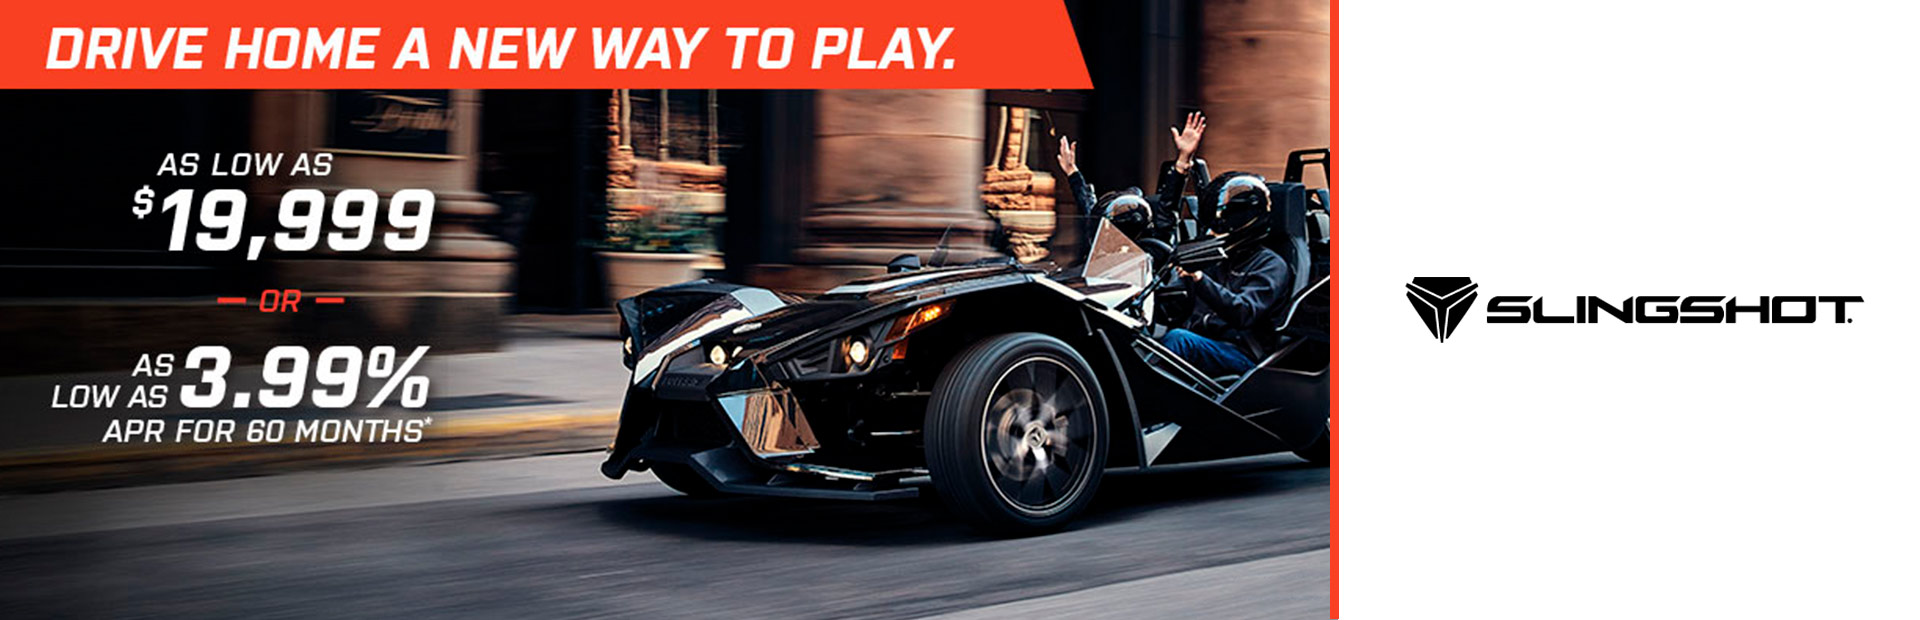 Slingshot: Drive Home A New Way To Play